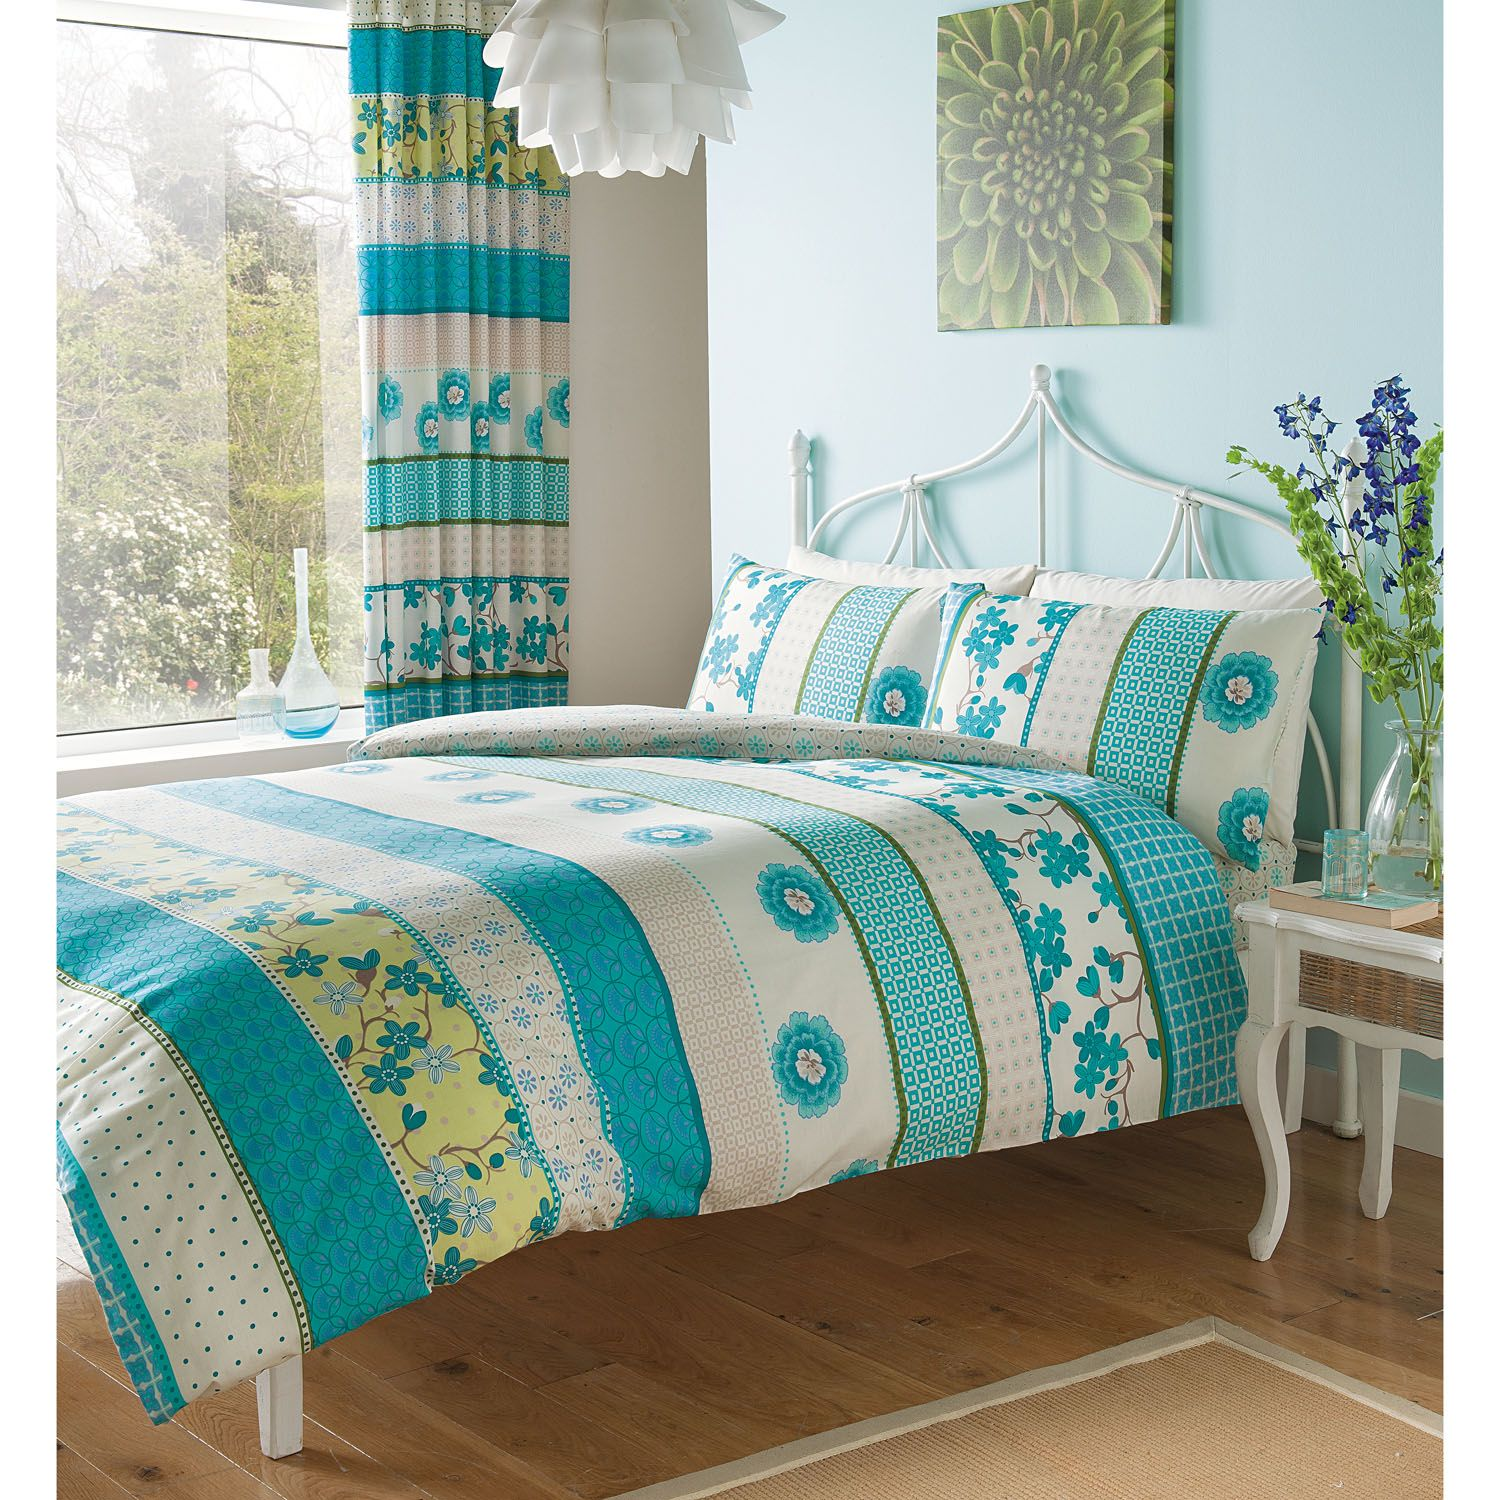 Gaveno Cavailia Hana plete Bedding Set with Curtains in Teal